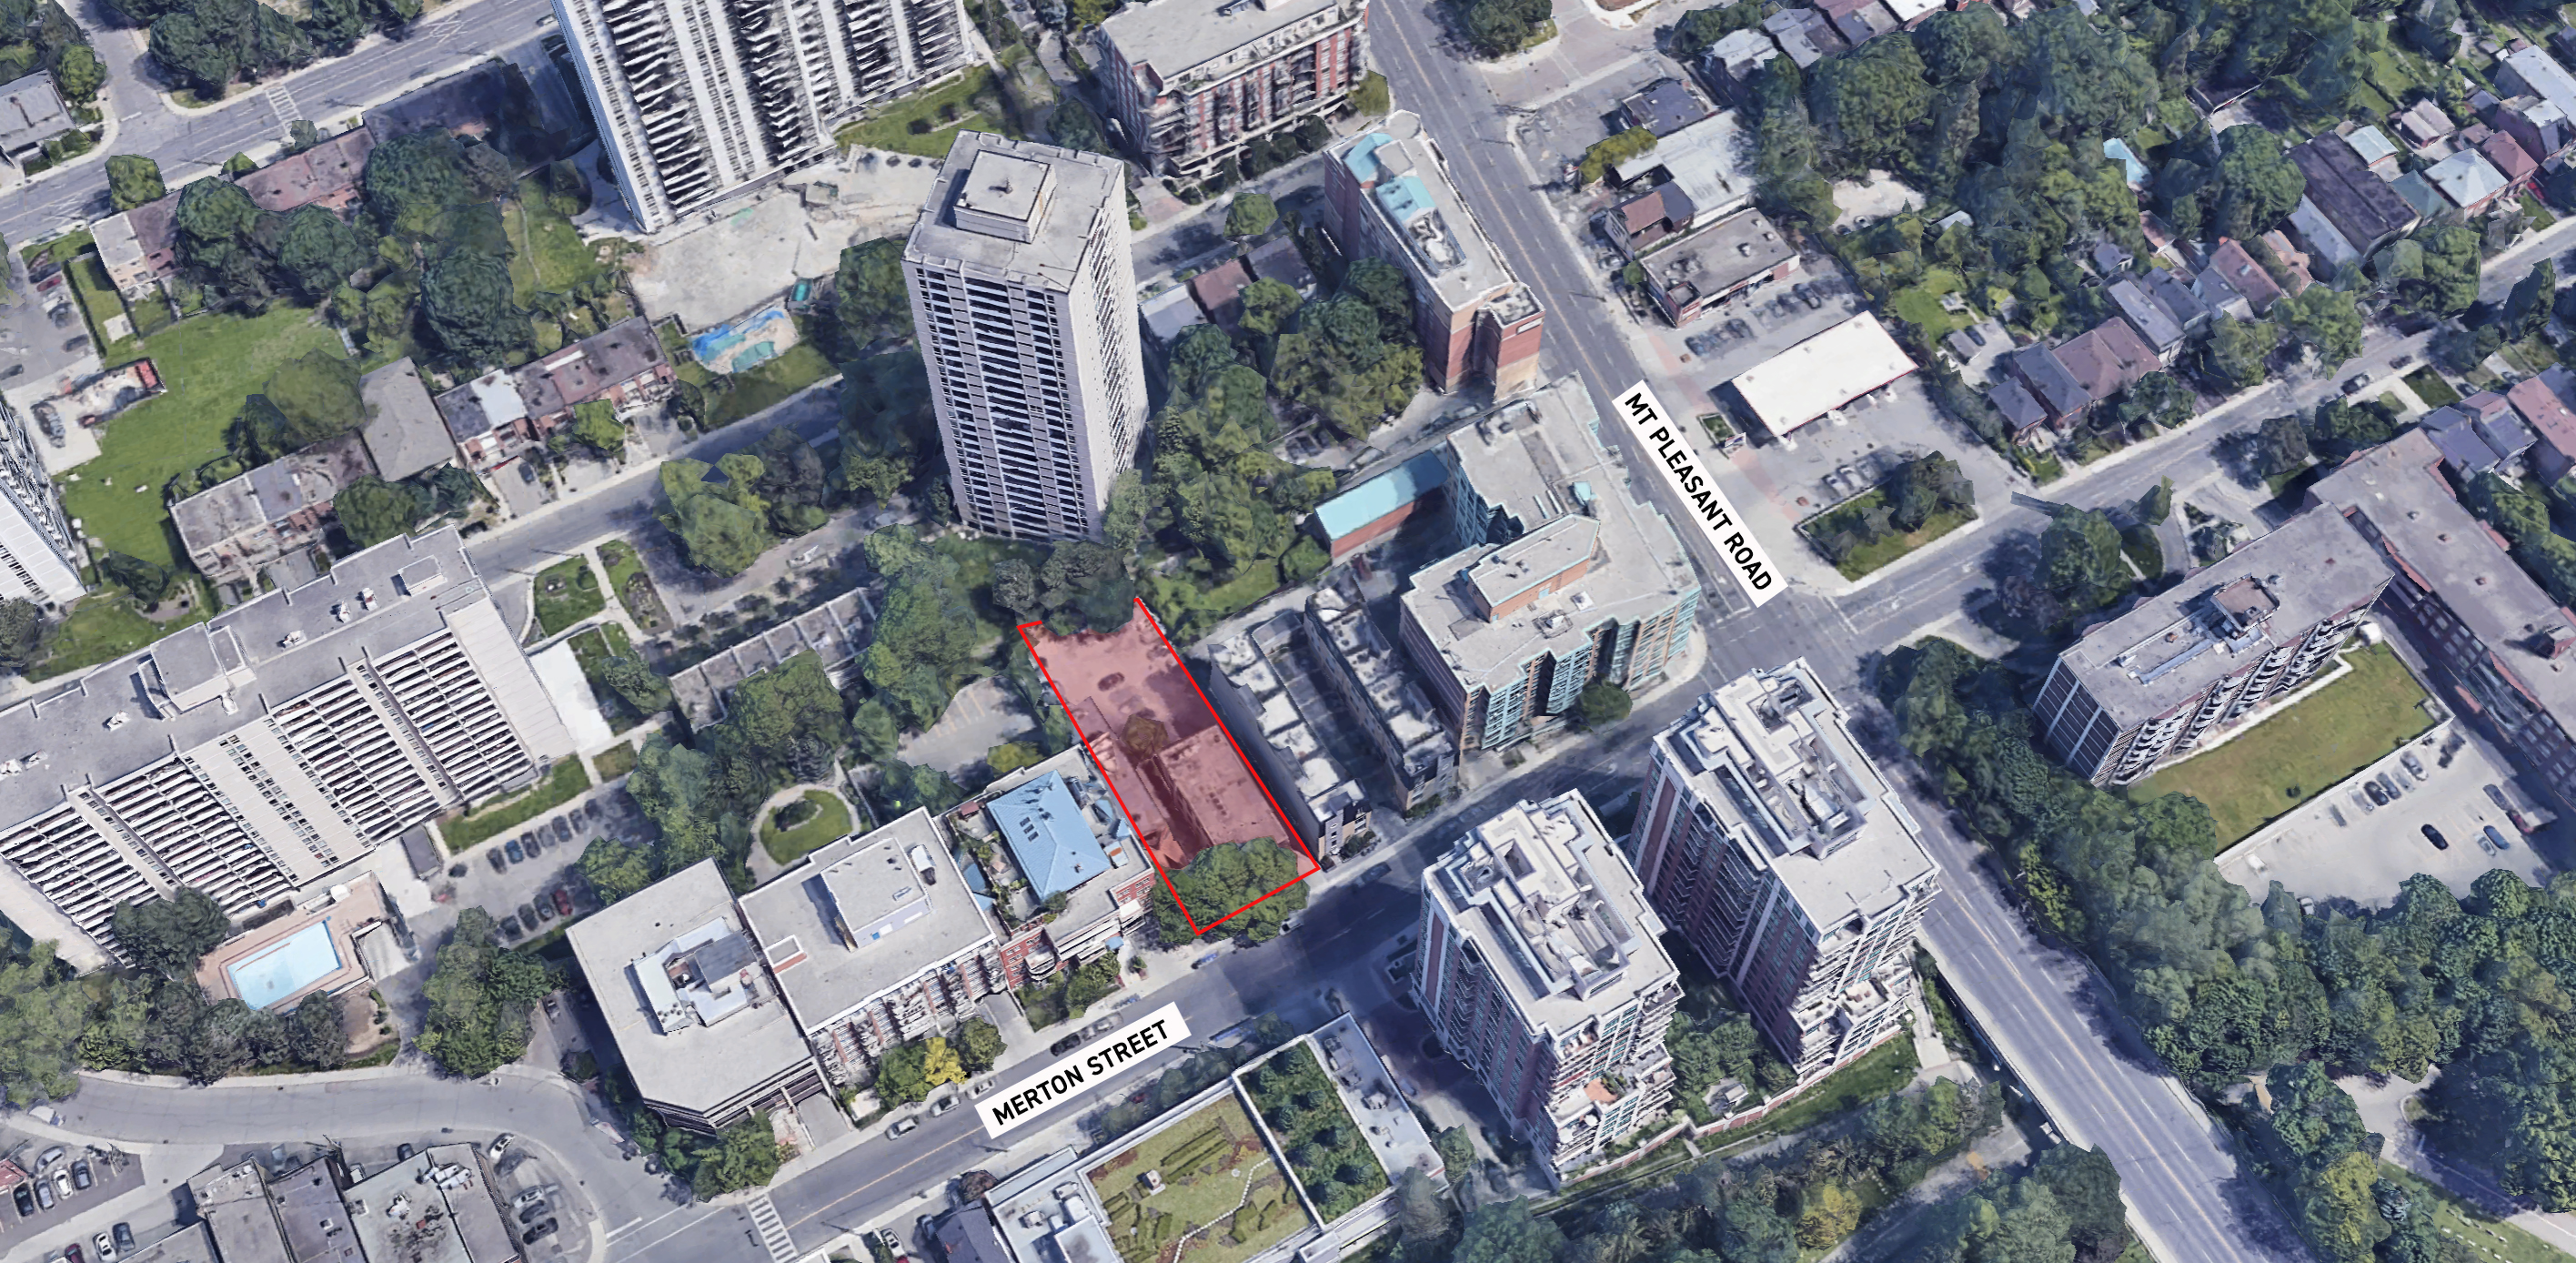 Application Revised for 13-Storey Rockport Group Condo on Merton